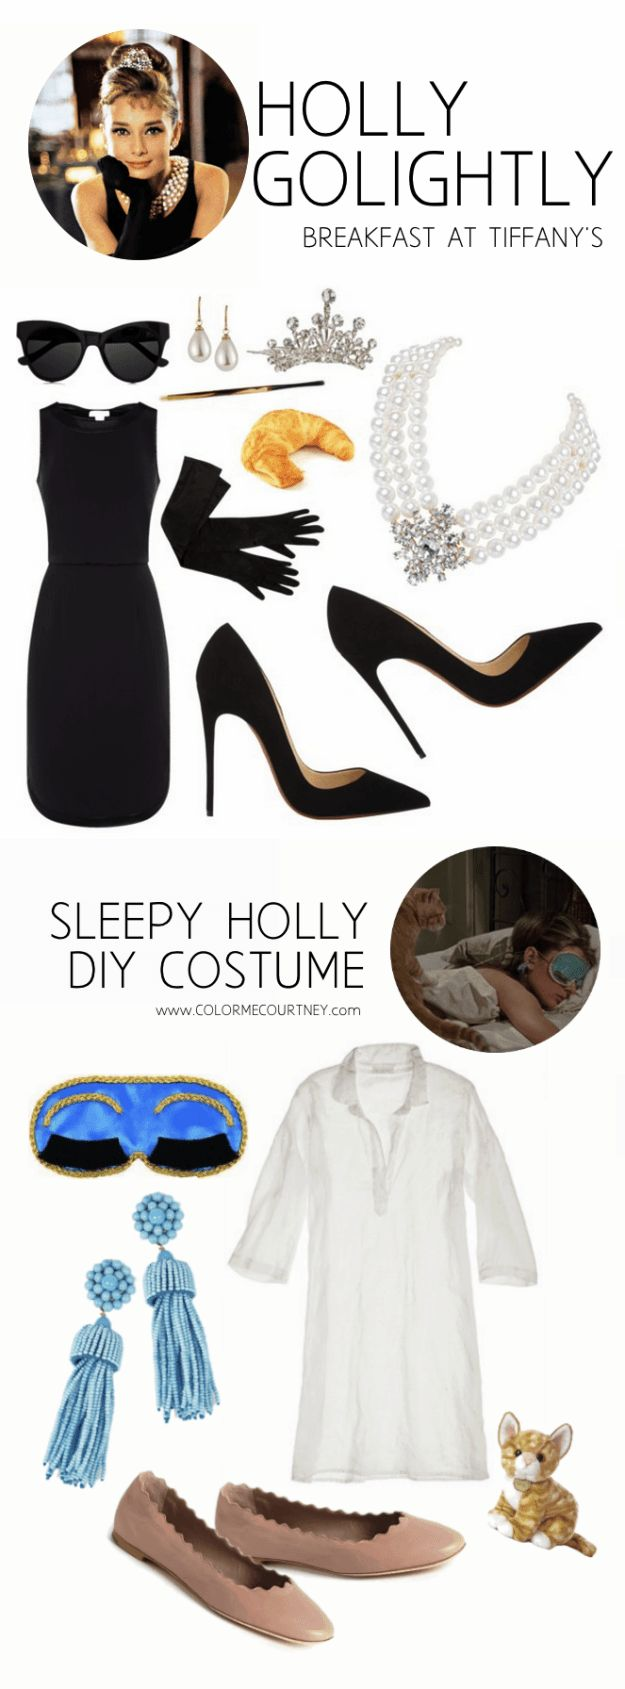 HOLLY GOLIGHTLY HALLOWEEN COSTUME BREAKFAST AT TIFFANY'S HALLOWEEN COSTUME BREAKFAST AT TIFFANYS HALLOWEEN COSTUME DIY HALLOWEEN COSTUME DO IT YOURSELF HALLOWEEN COSTUME DIY HALLOWEEN COSTUME IDEAS